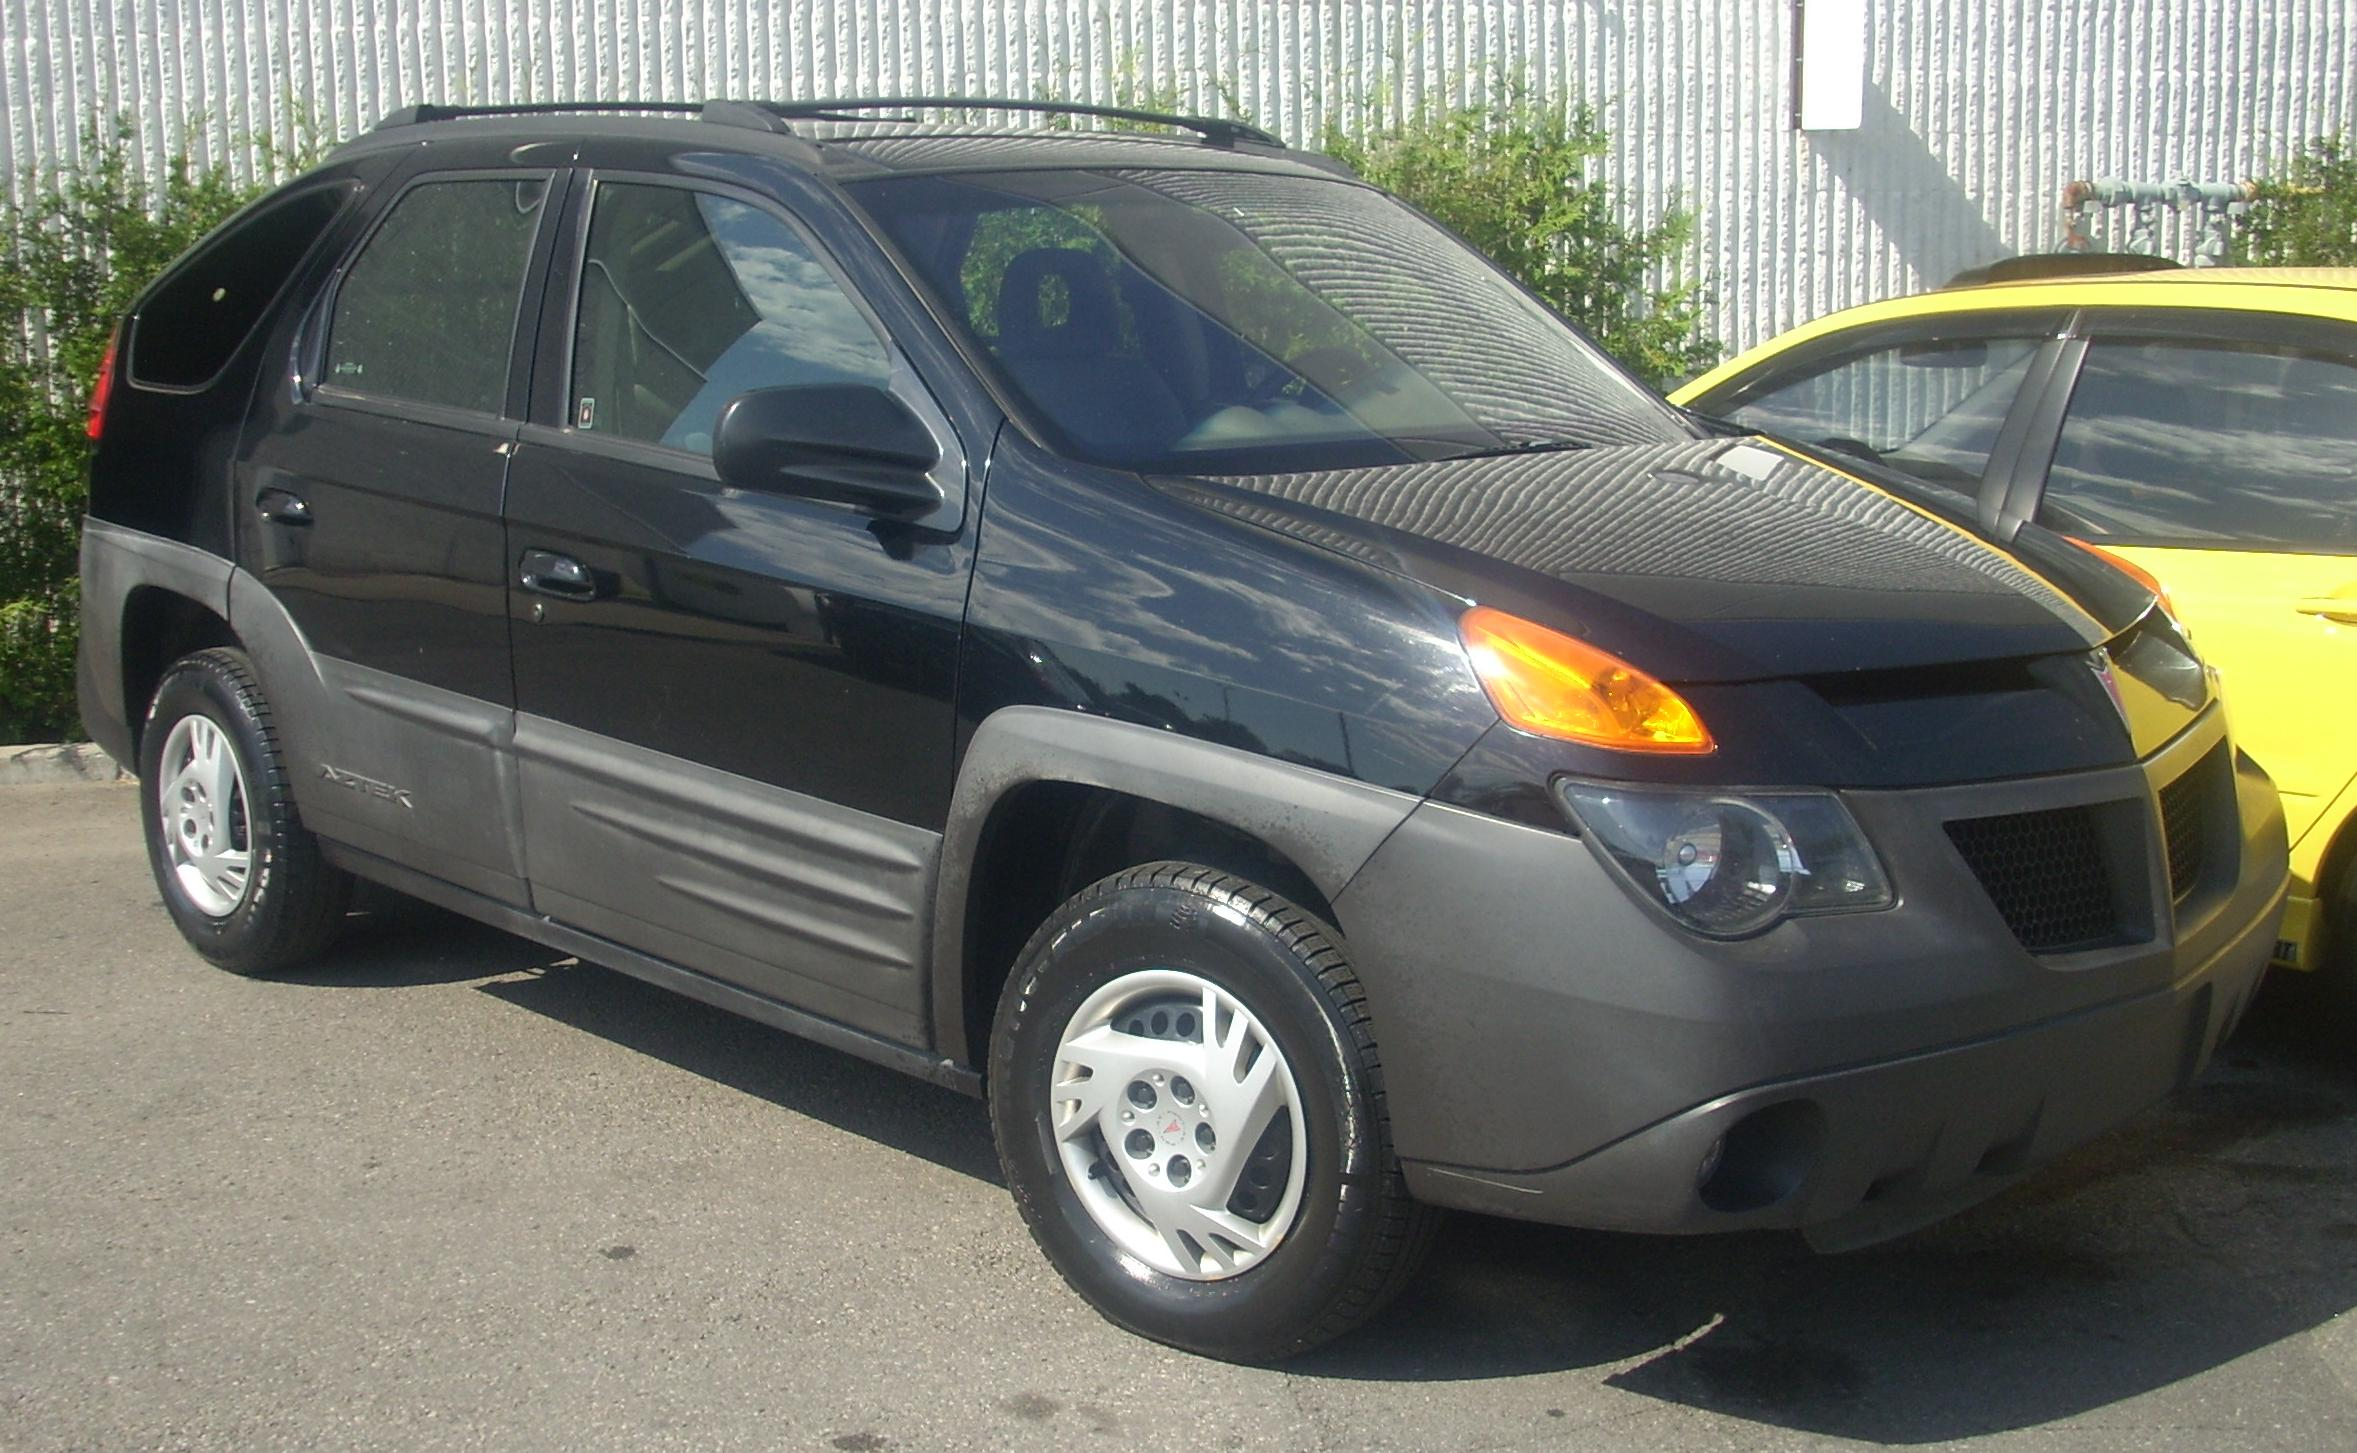 2001 Pontiac Aztek photographed in Montreal Quebec Canada. & Compare SUVs : Pontiac Aztec vs. Ford Escape - WriteWork